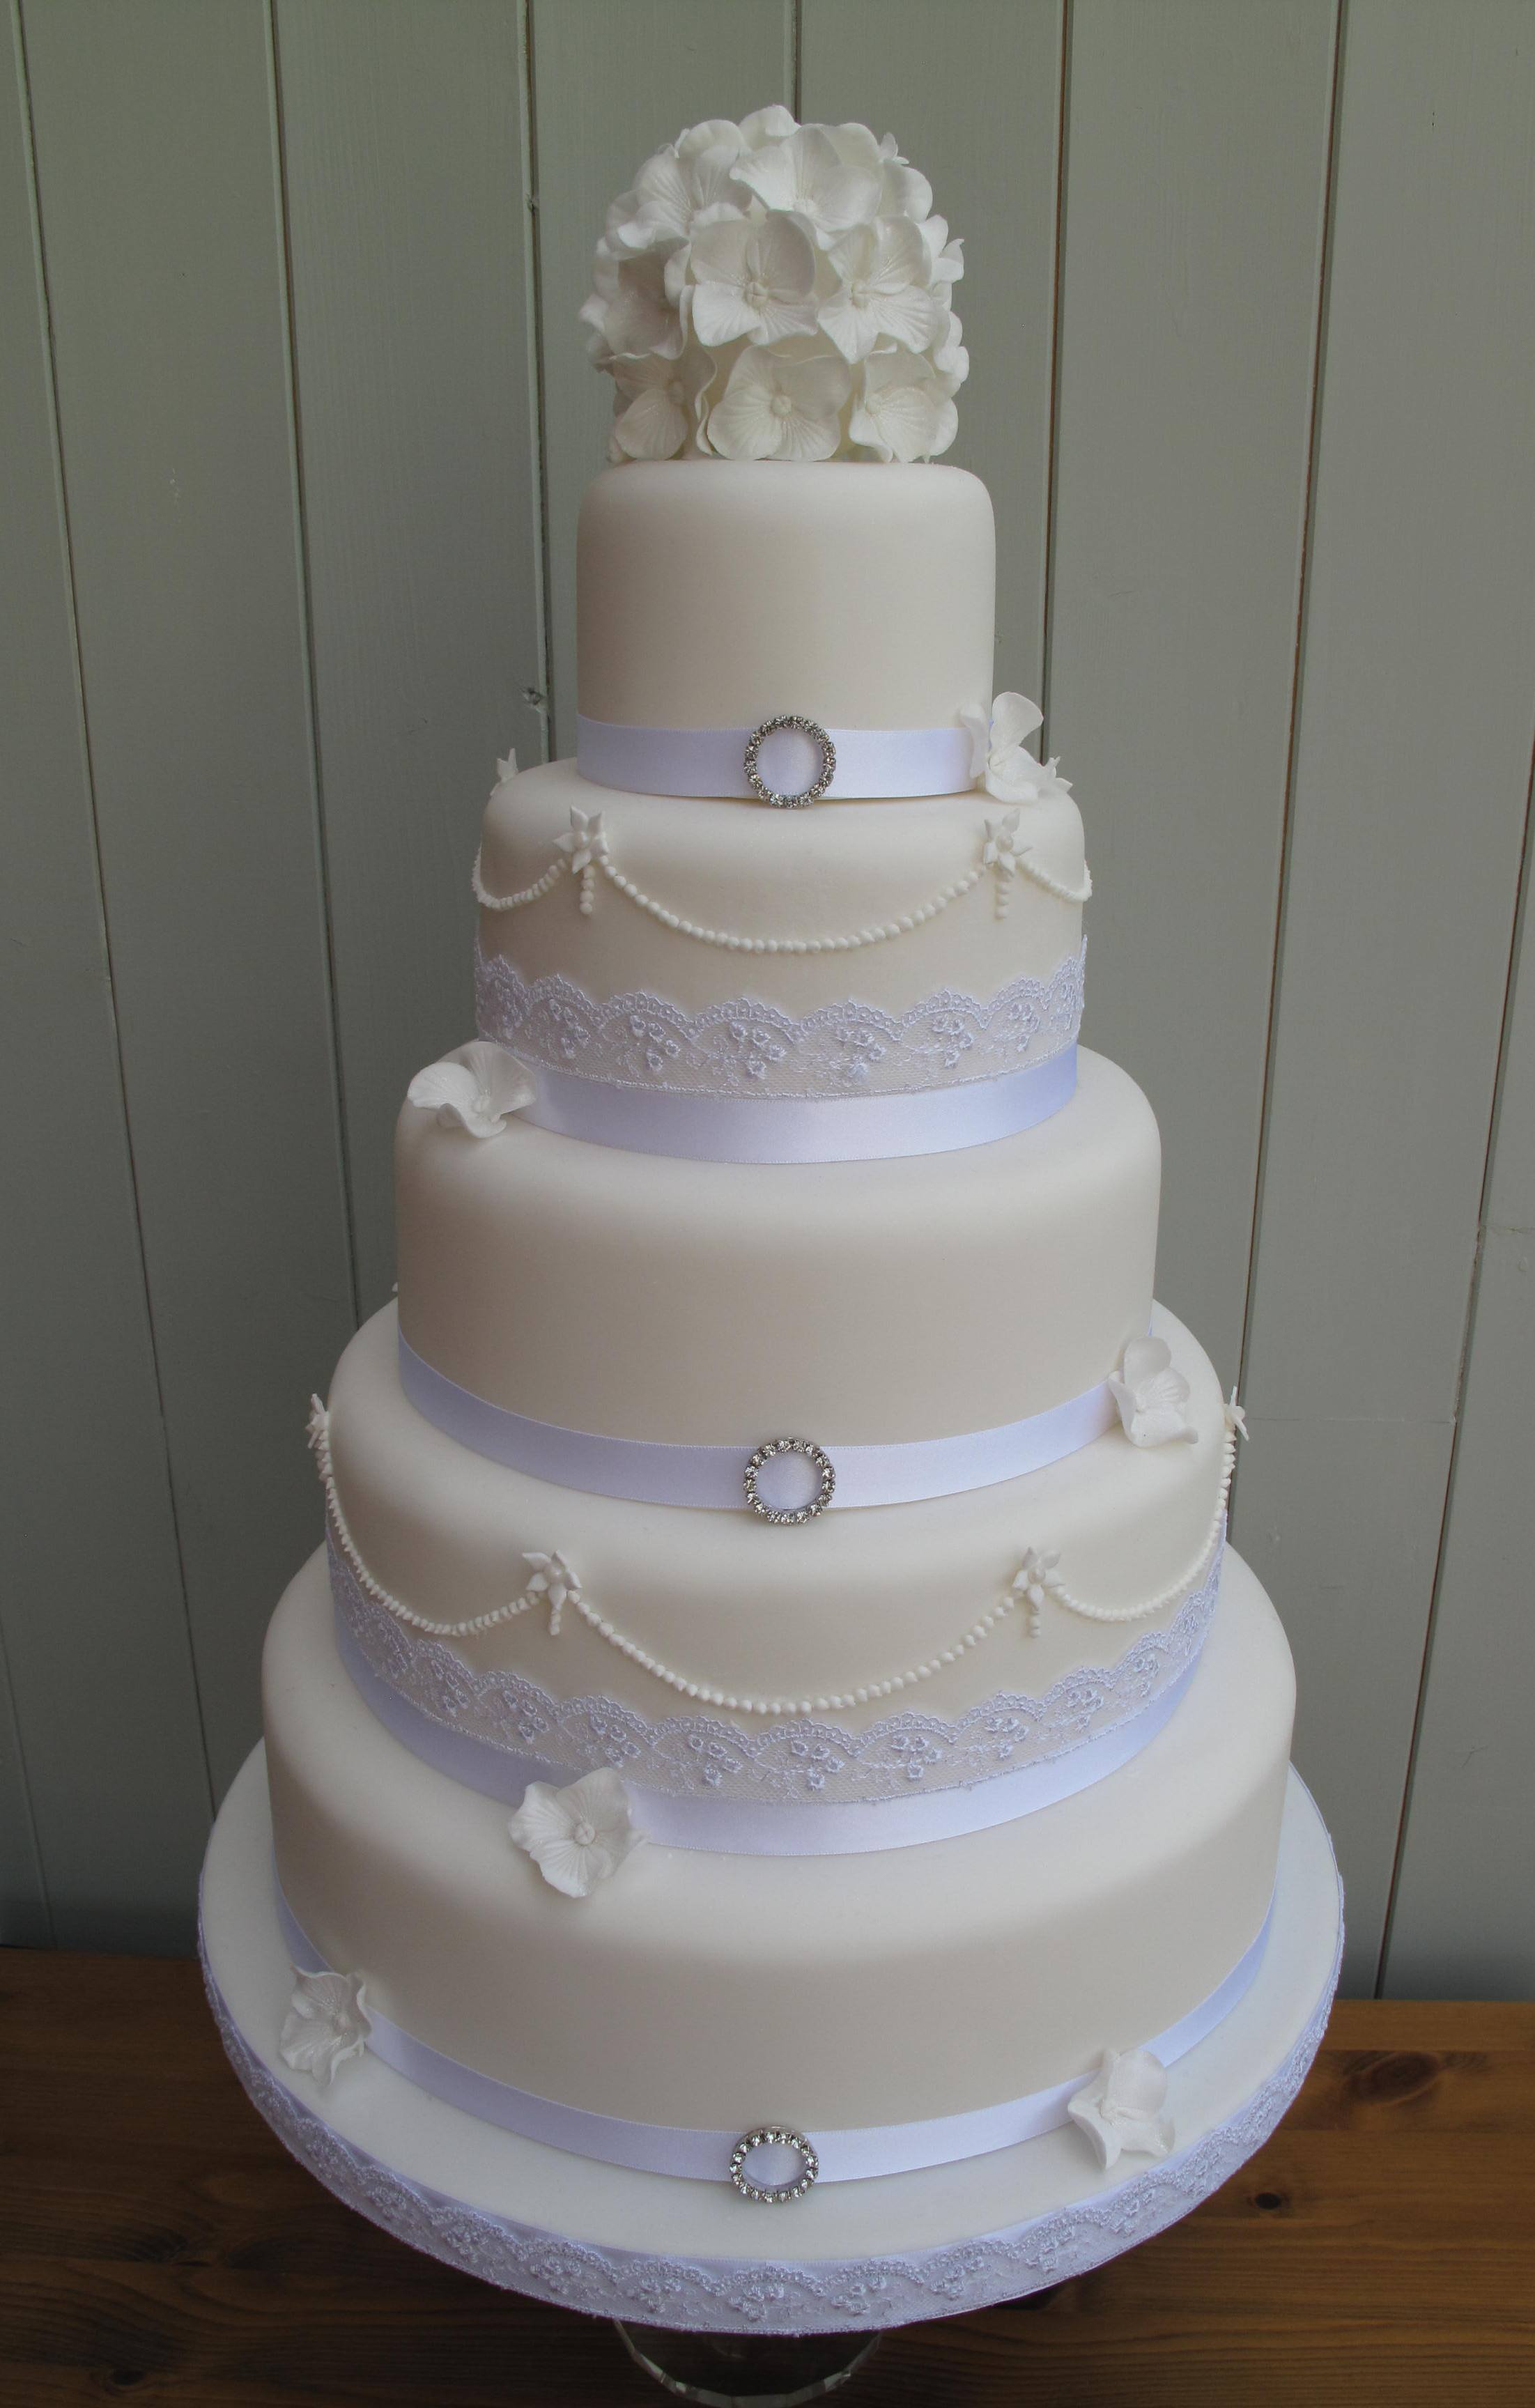 White Wedding Cakes And Other Types Of Hand Made Wedding Cakes